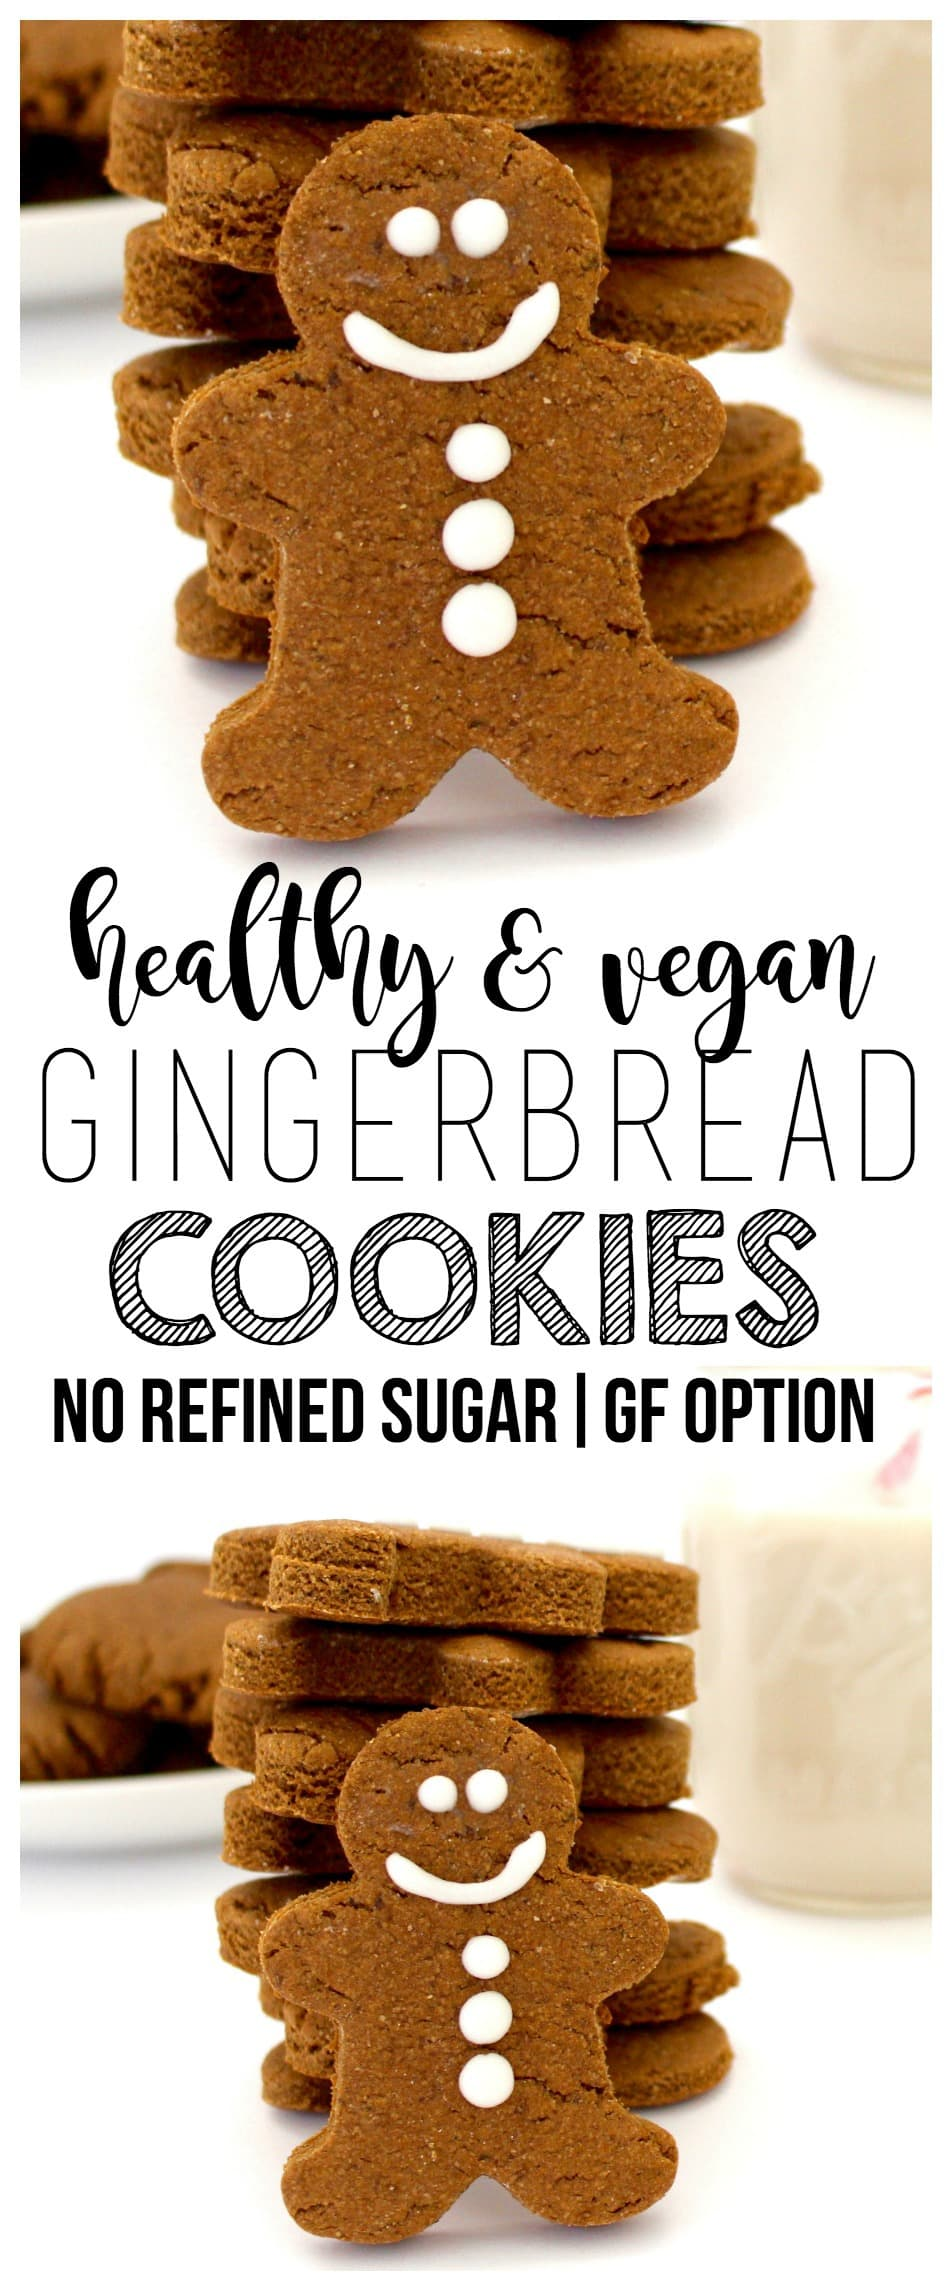 These adorable Gingerbread Cookies are so delicious and cute! They are vegan, gluten-free, and contain no refined sugar, making them the perfect little holiday treat!